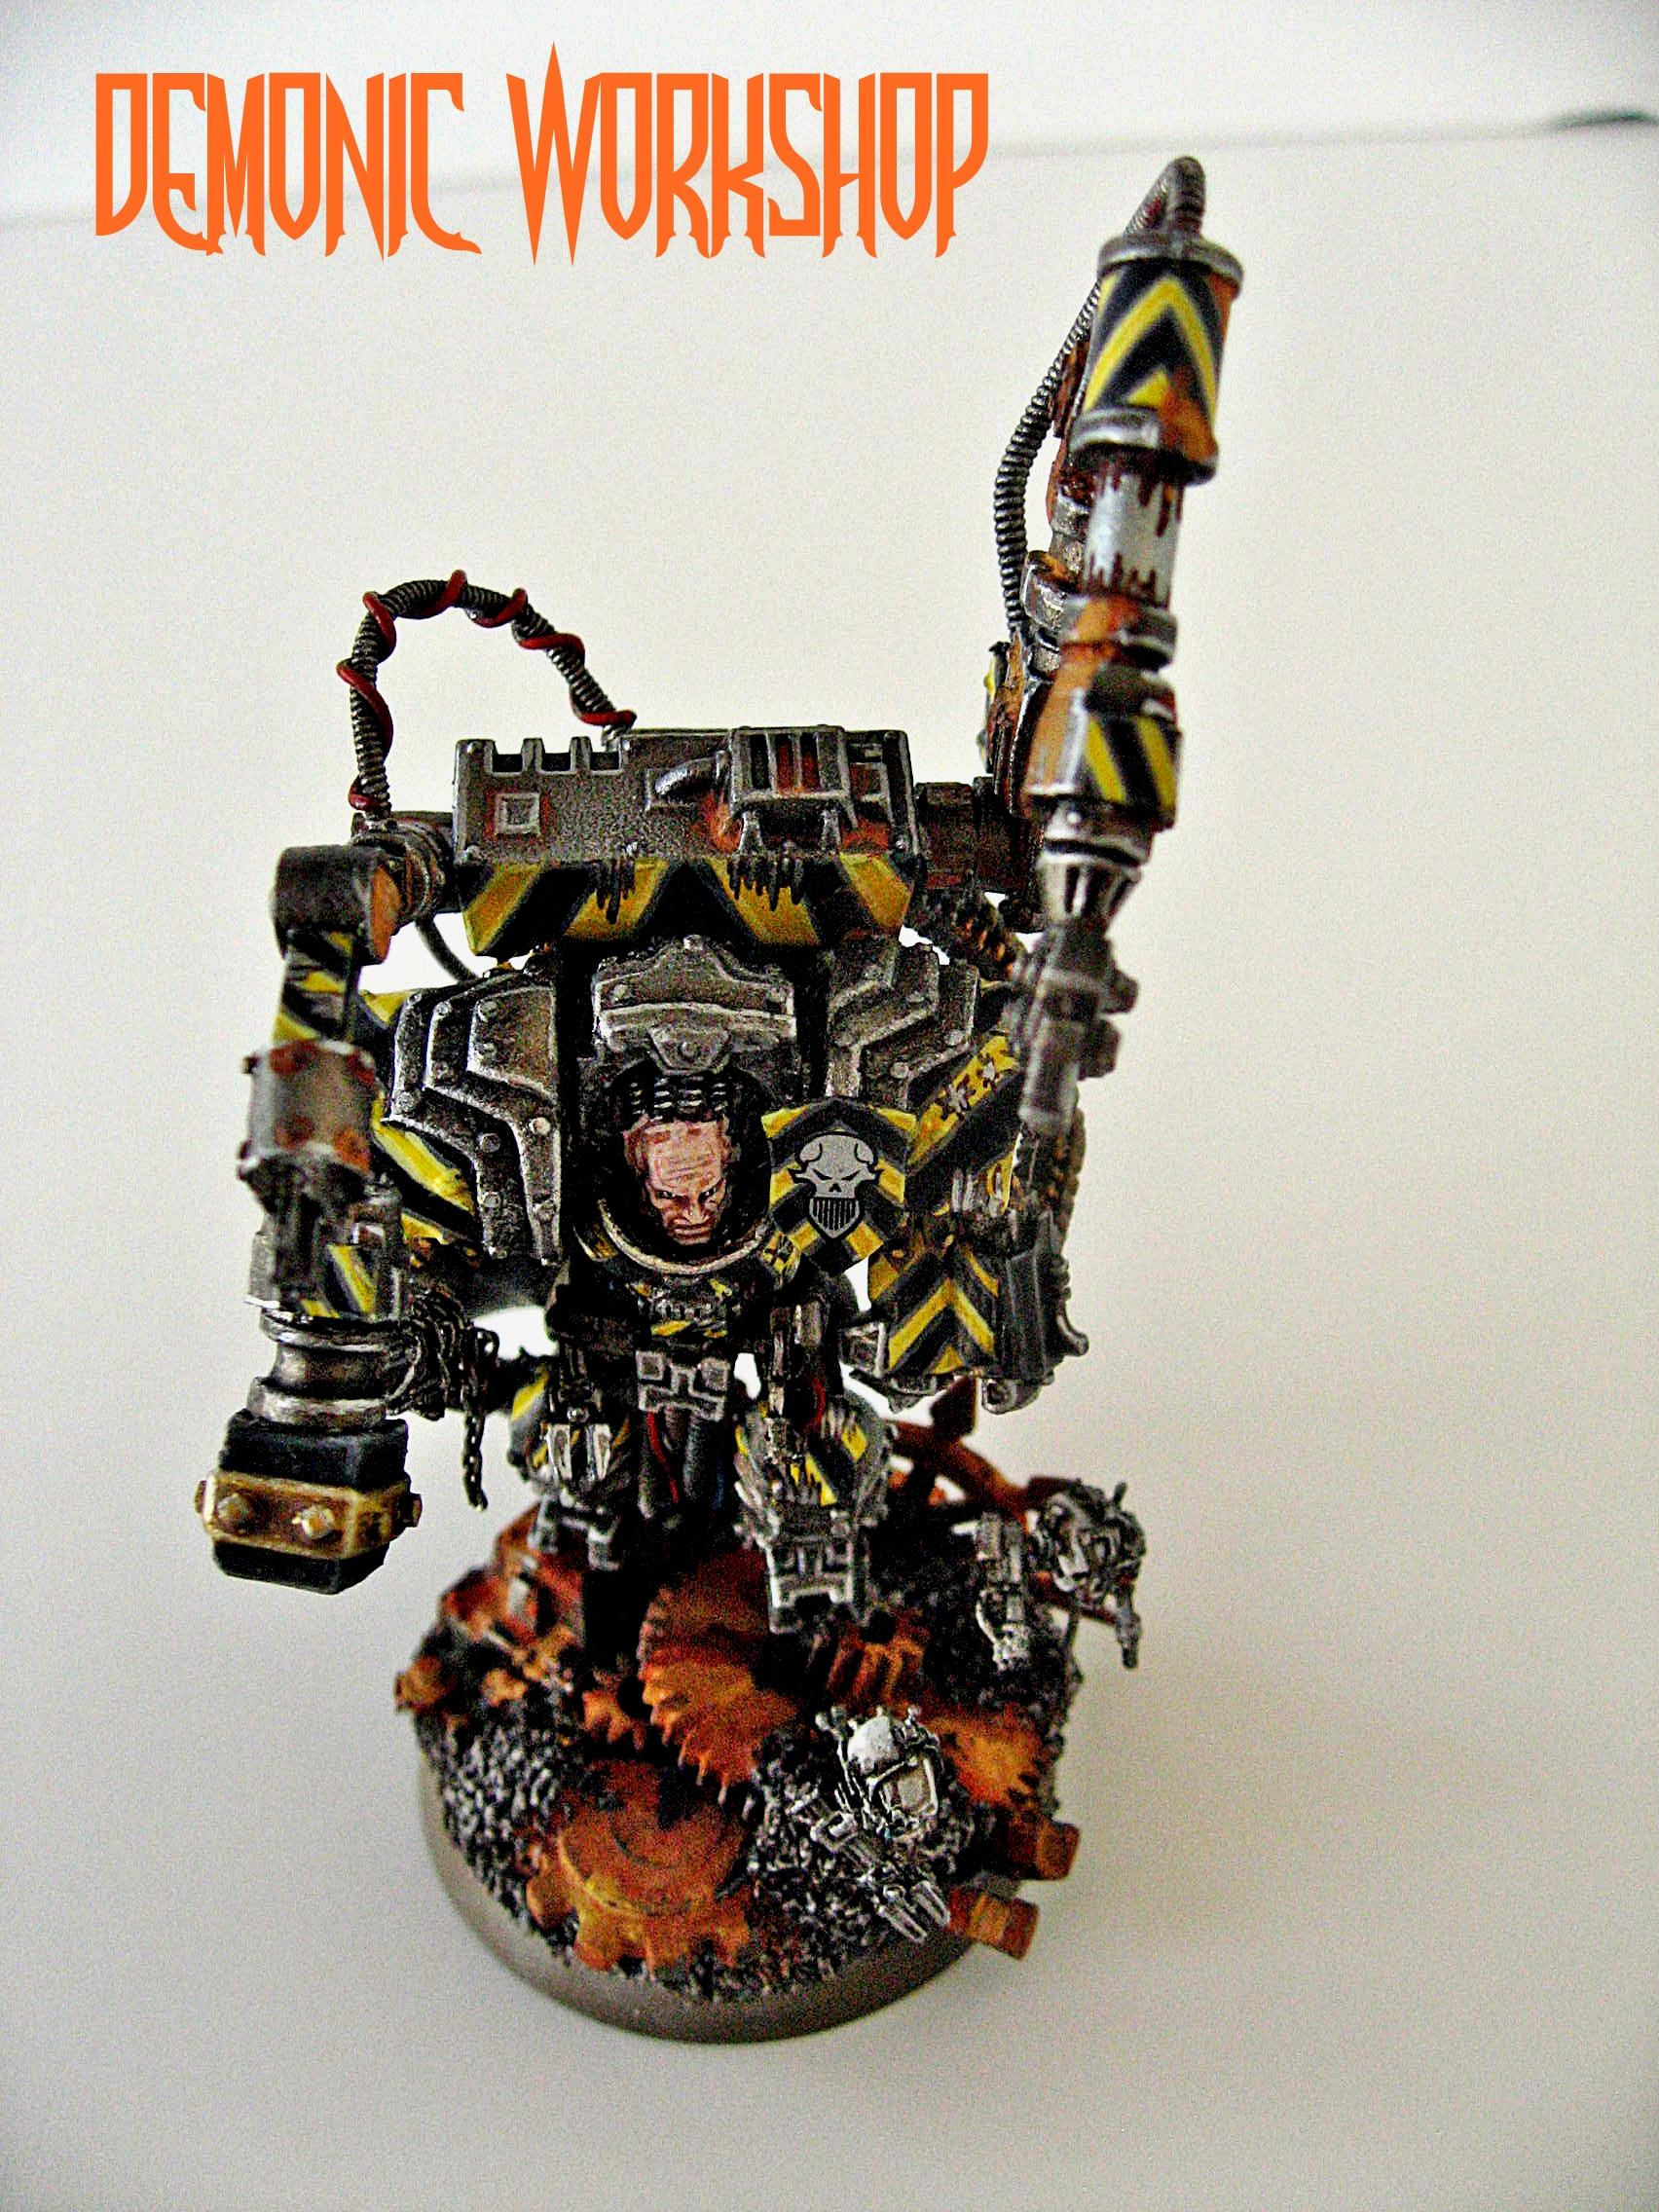 28mm, Awesome, Based, Chaos, Chaos Space Marines, Conversion, Custom, Iron Warriors, Mecha Tendrils, Painted, Warhammer 40,000, Warpsmith